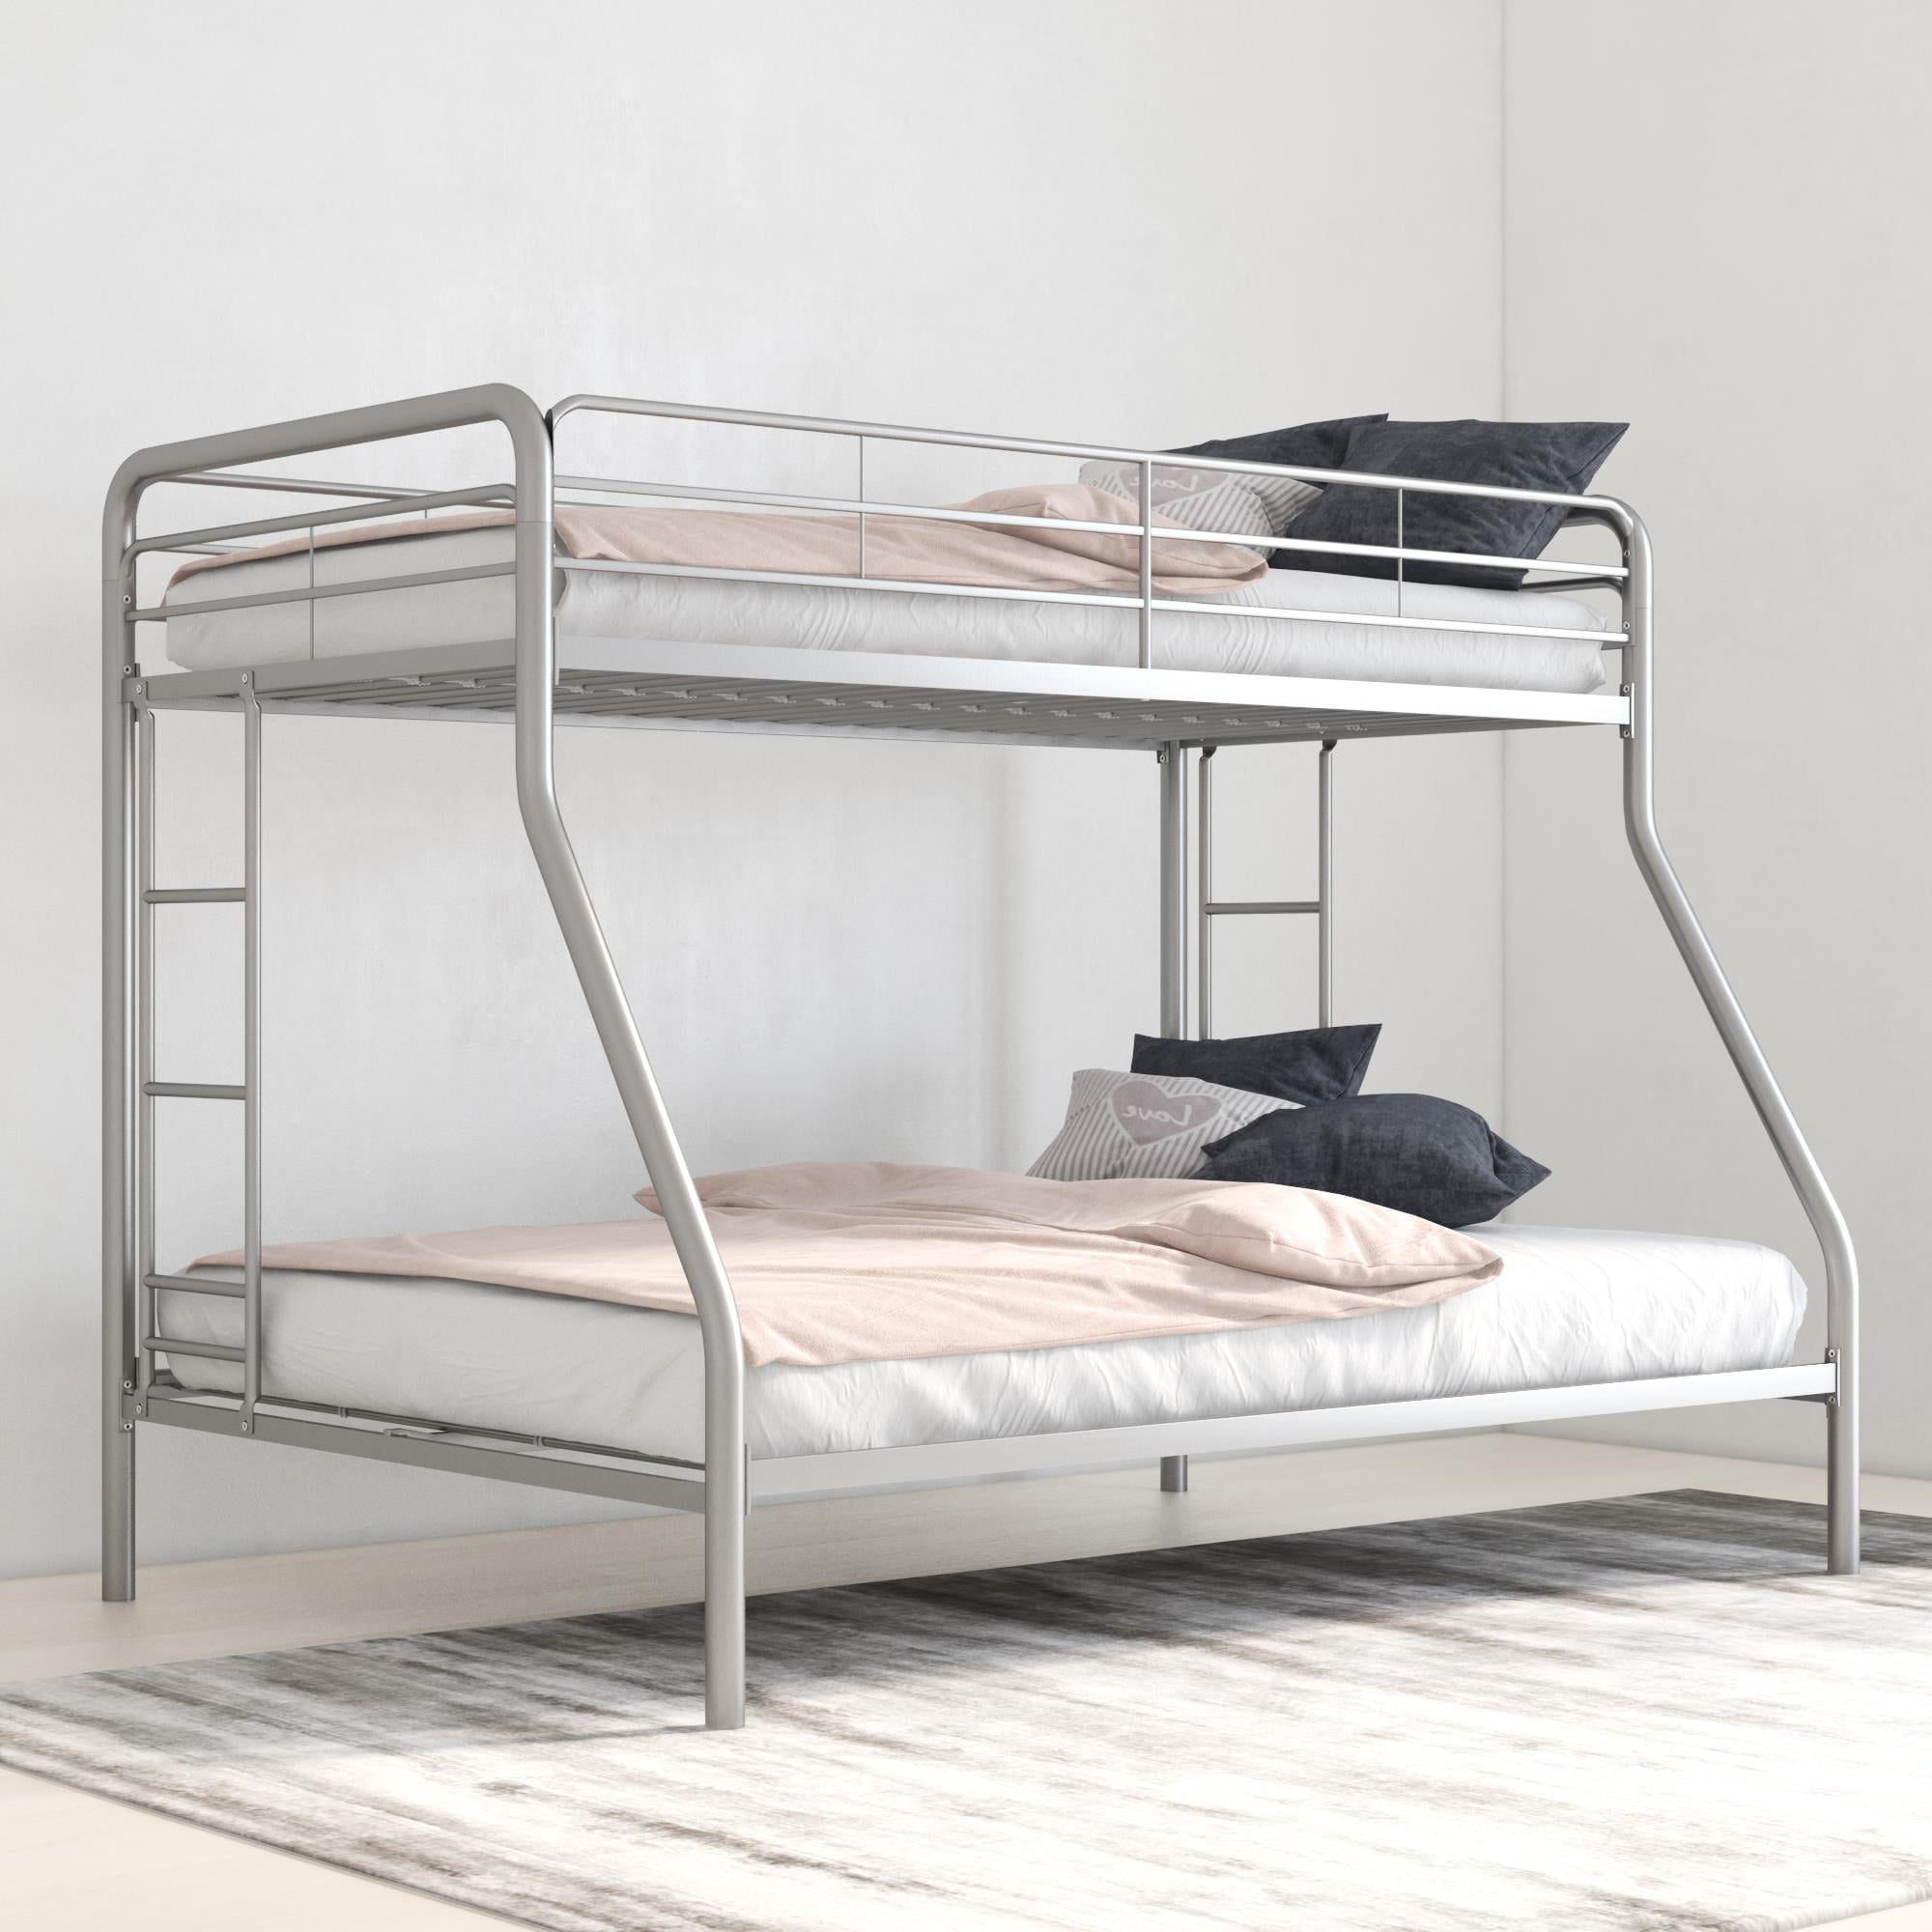 Cheap Metal Bunk Beds Cheaper Than Retail Price Buy Clothing Accessories And Lifestyle Products For Women Men